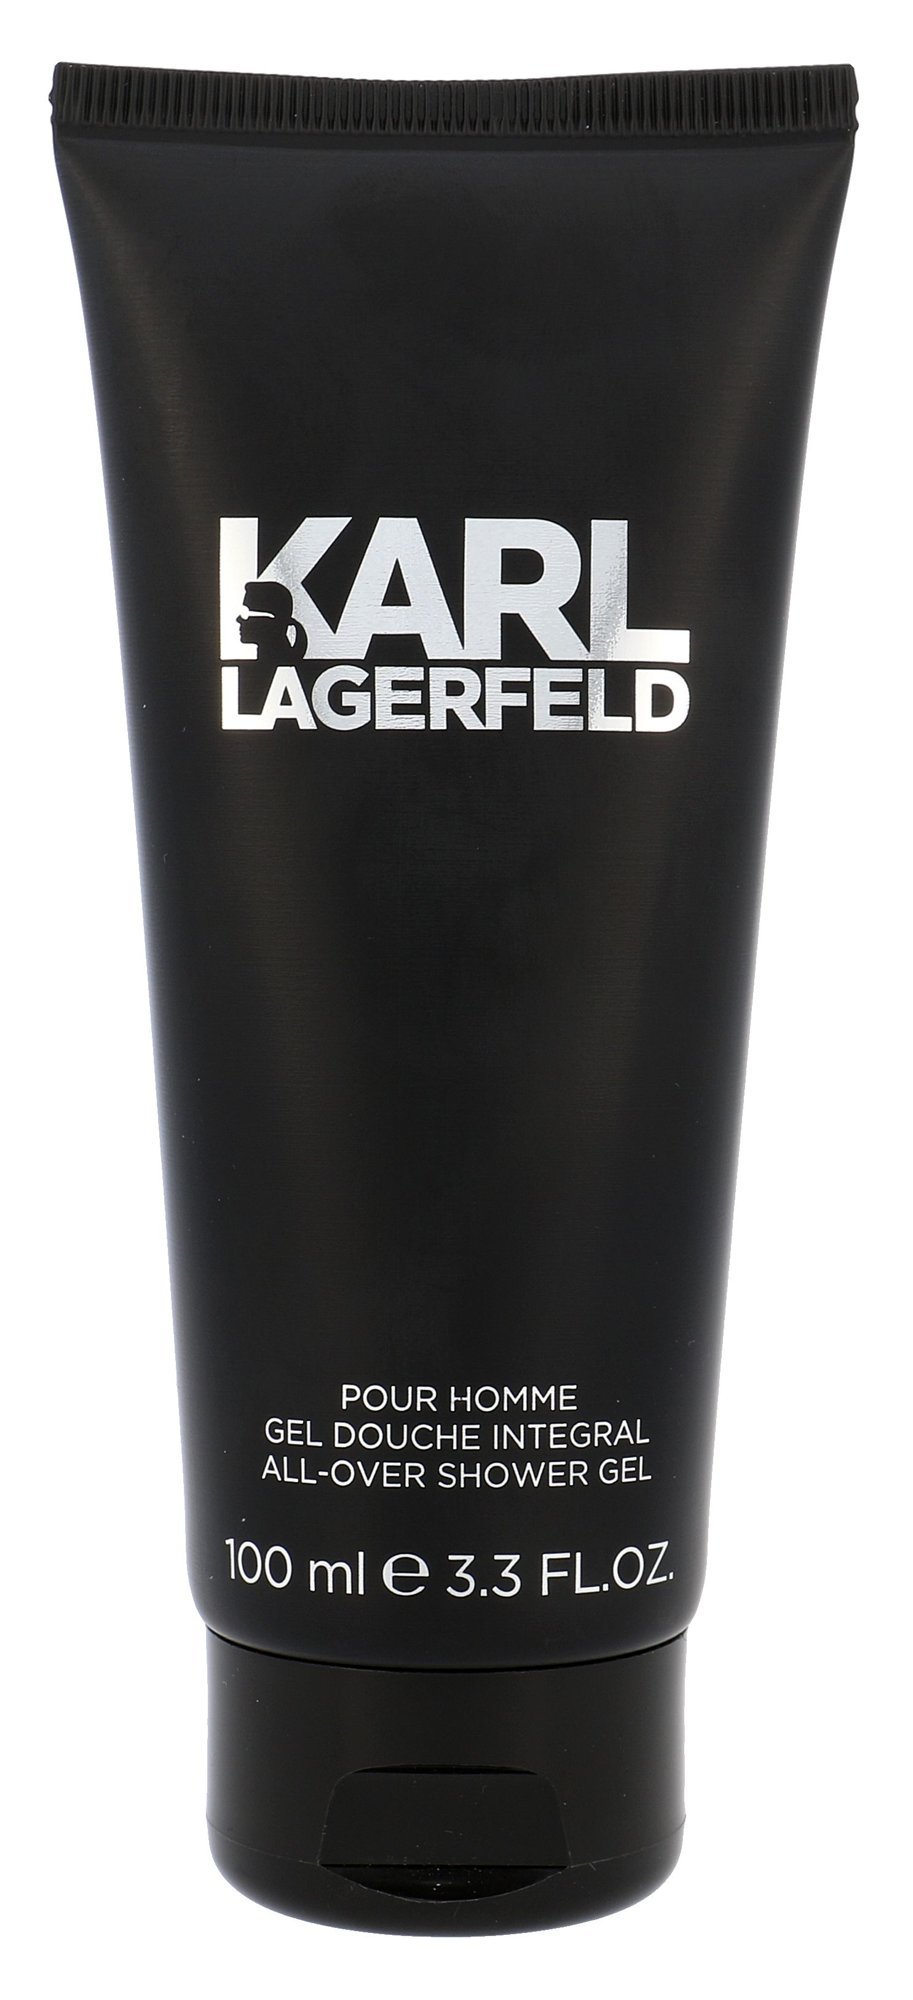 Karl Lagerfeld Karl Lagerfeld For Him Shower gel 100ml